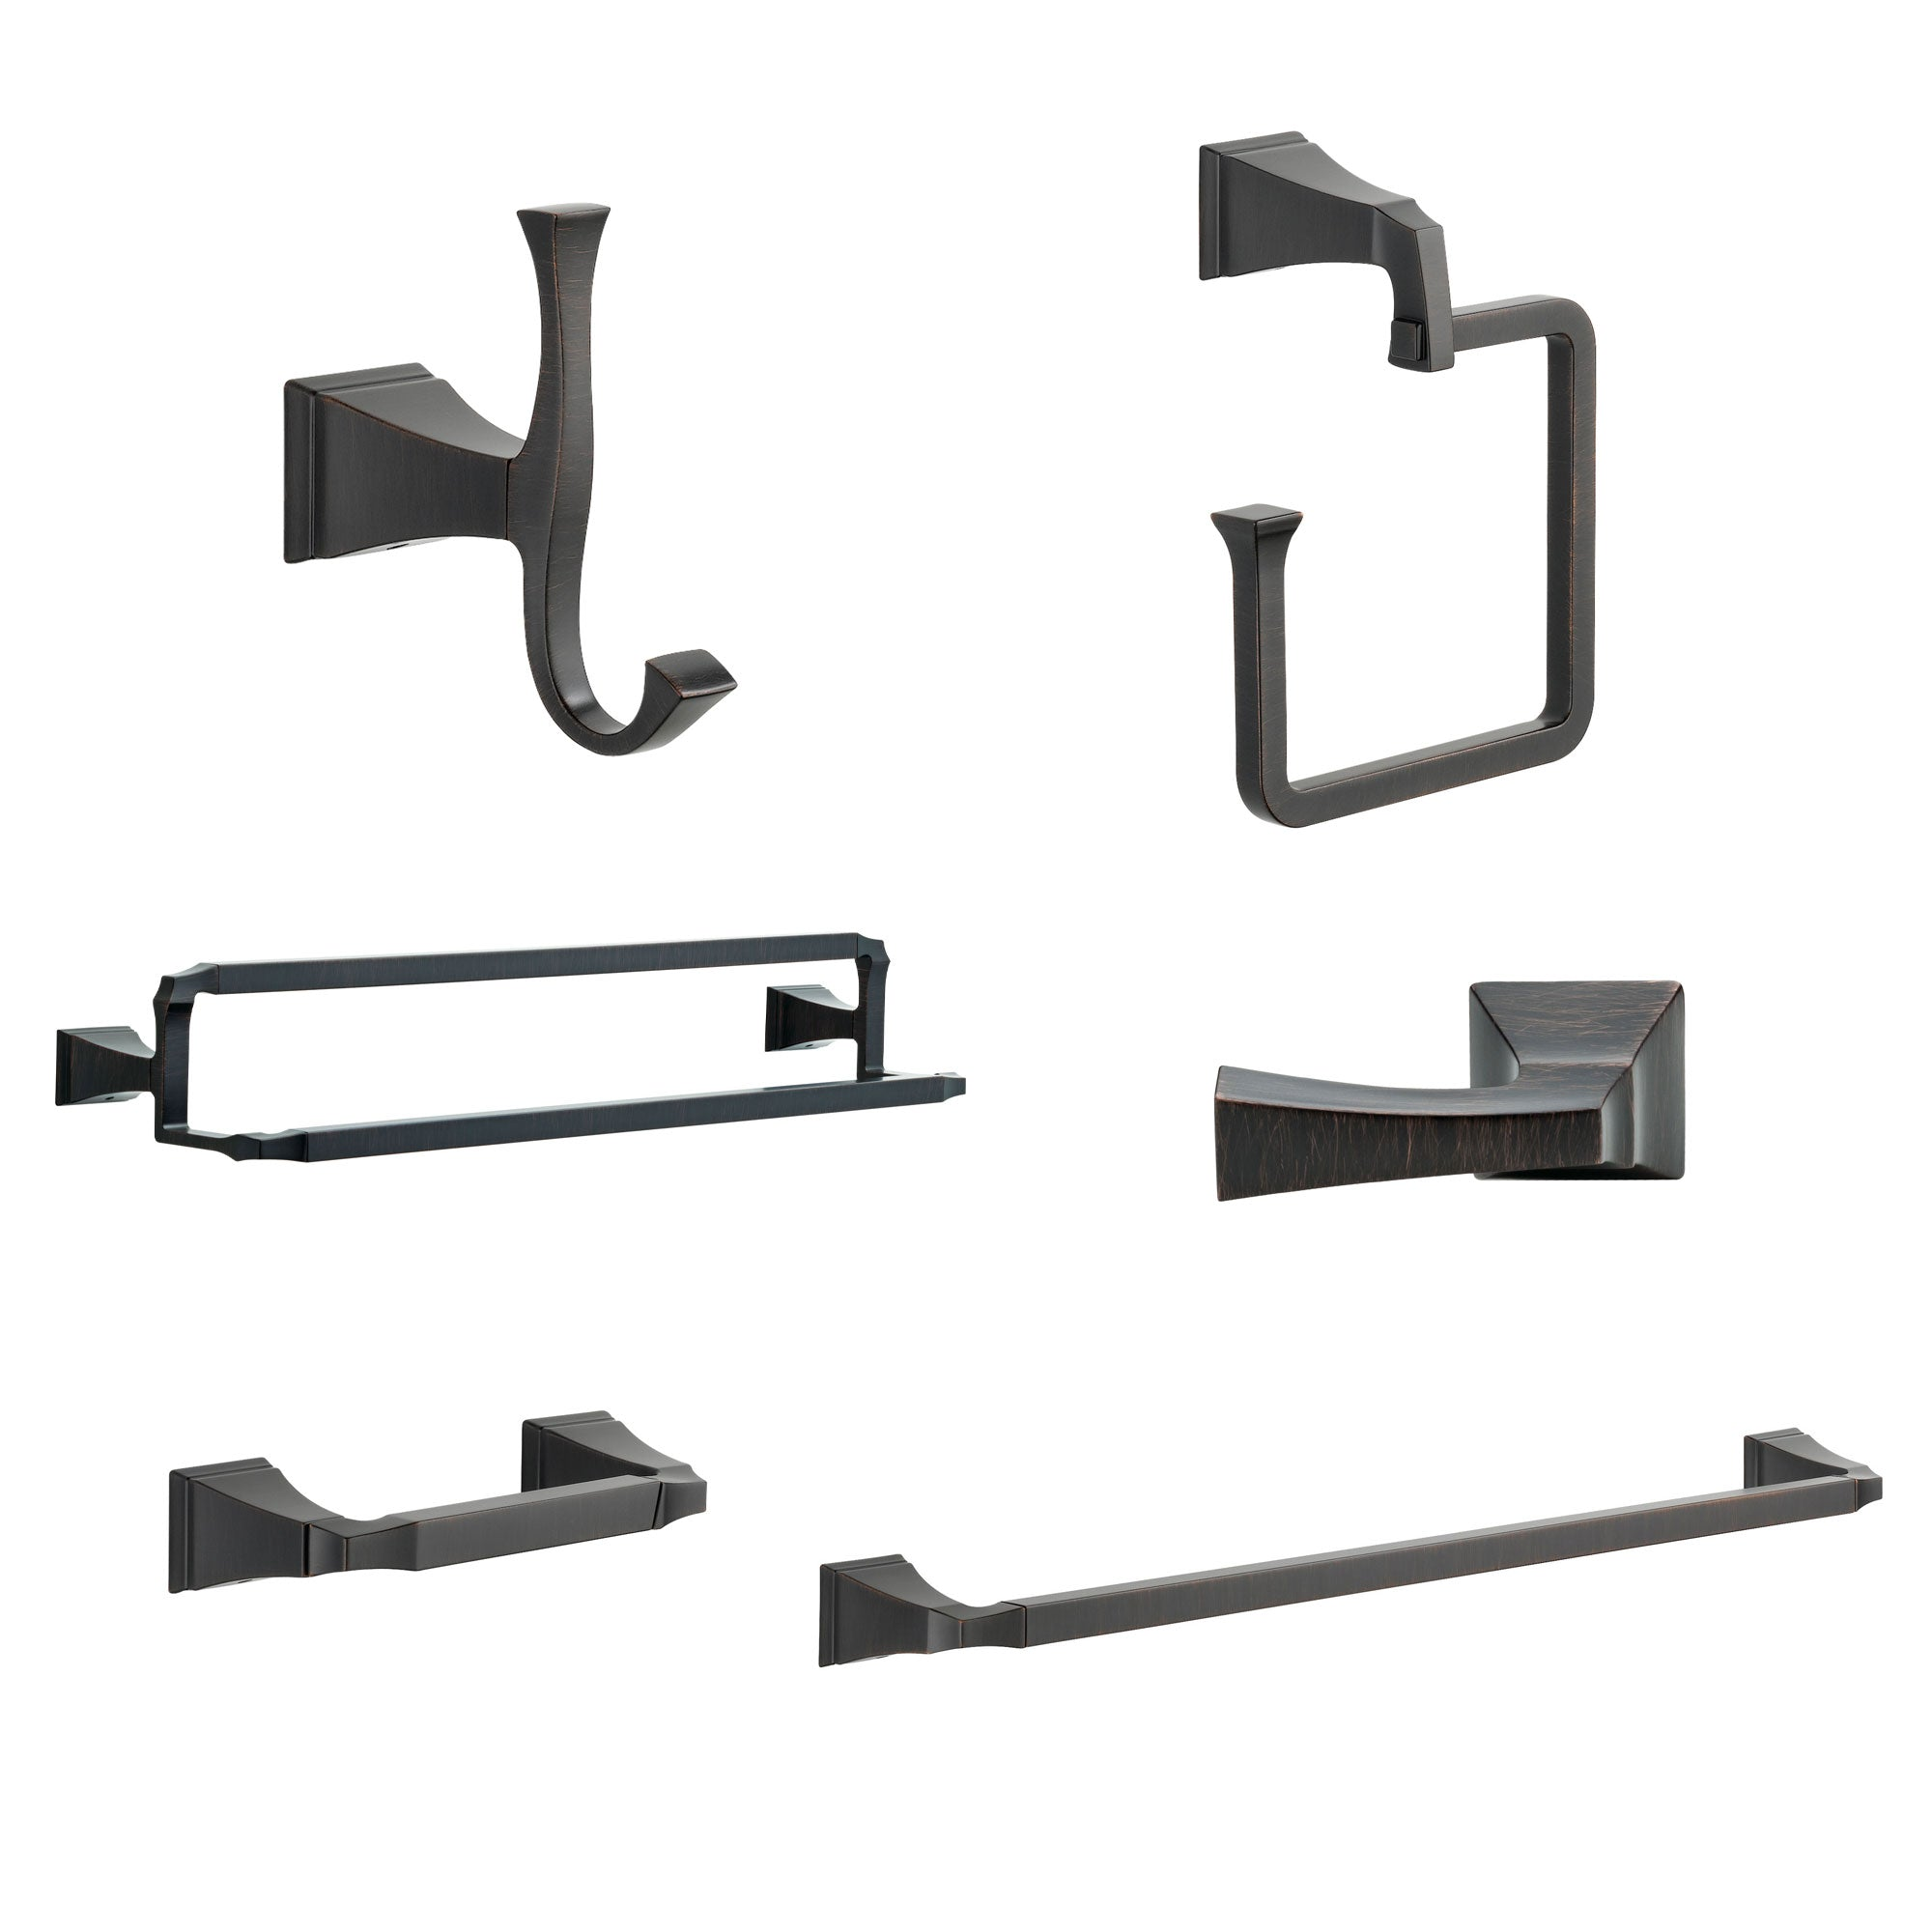 "Delta Dryden Venetian Bronze DELUXE Accessory Set: 24"" Towel Bar, Paper Holder, Towel Ring, Robe Hook, Tank Lever, & 24"" Double Towel Bar D10045AP"